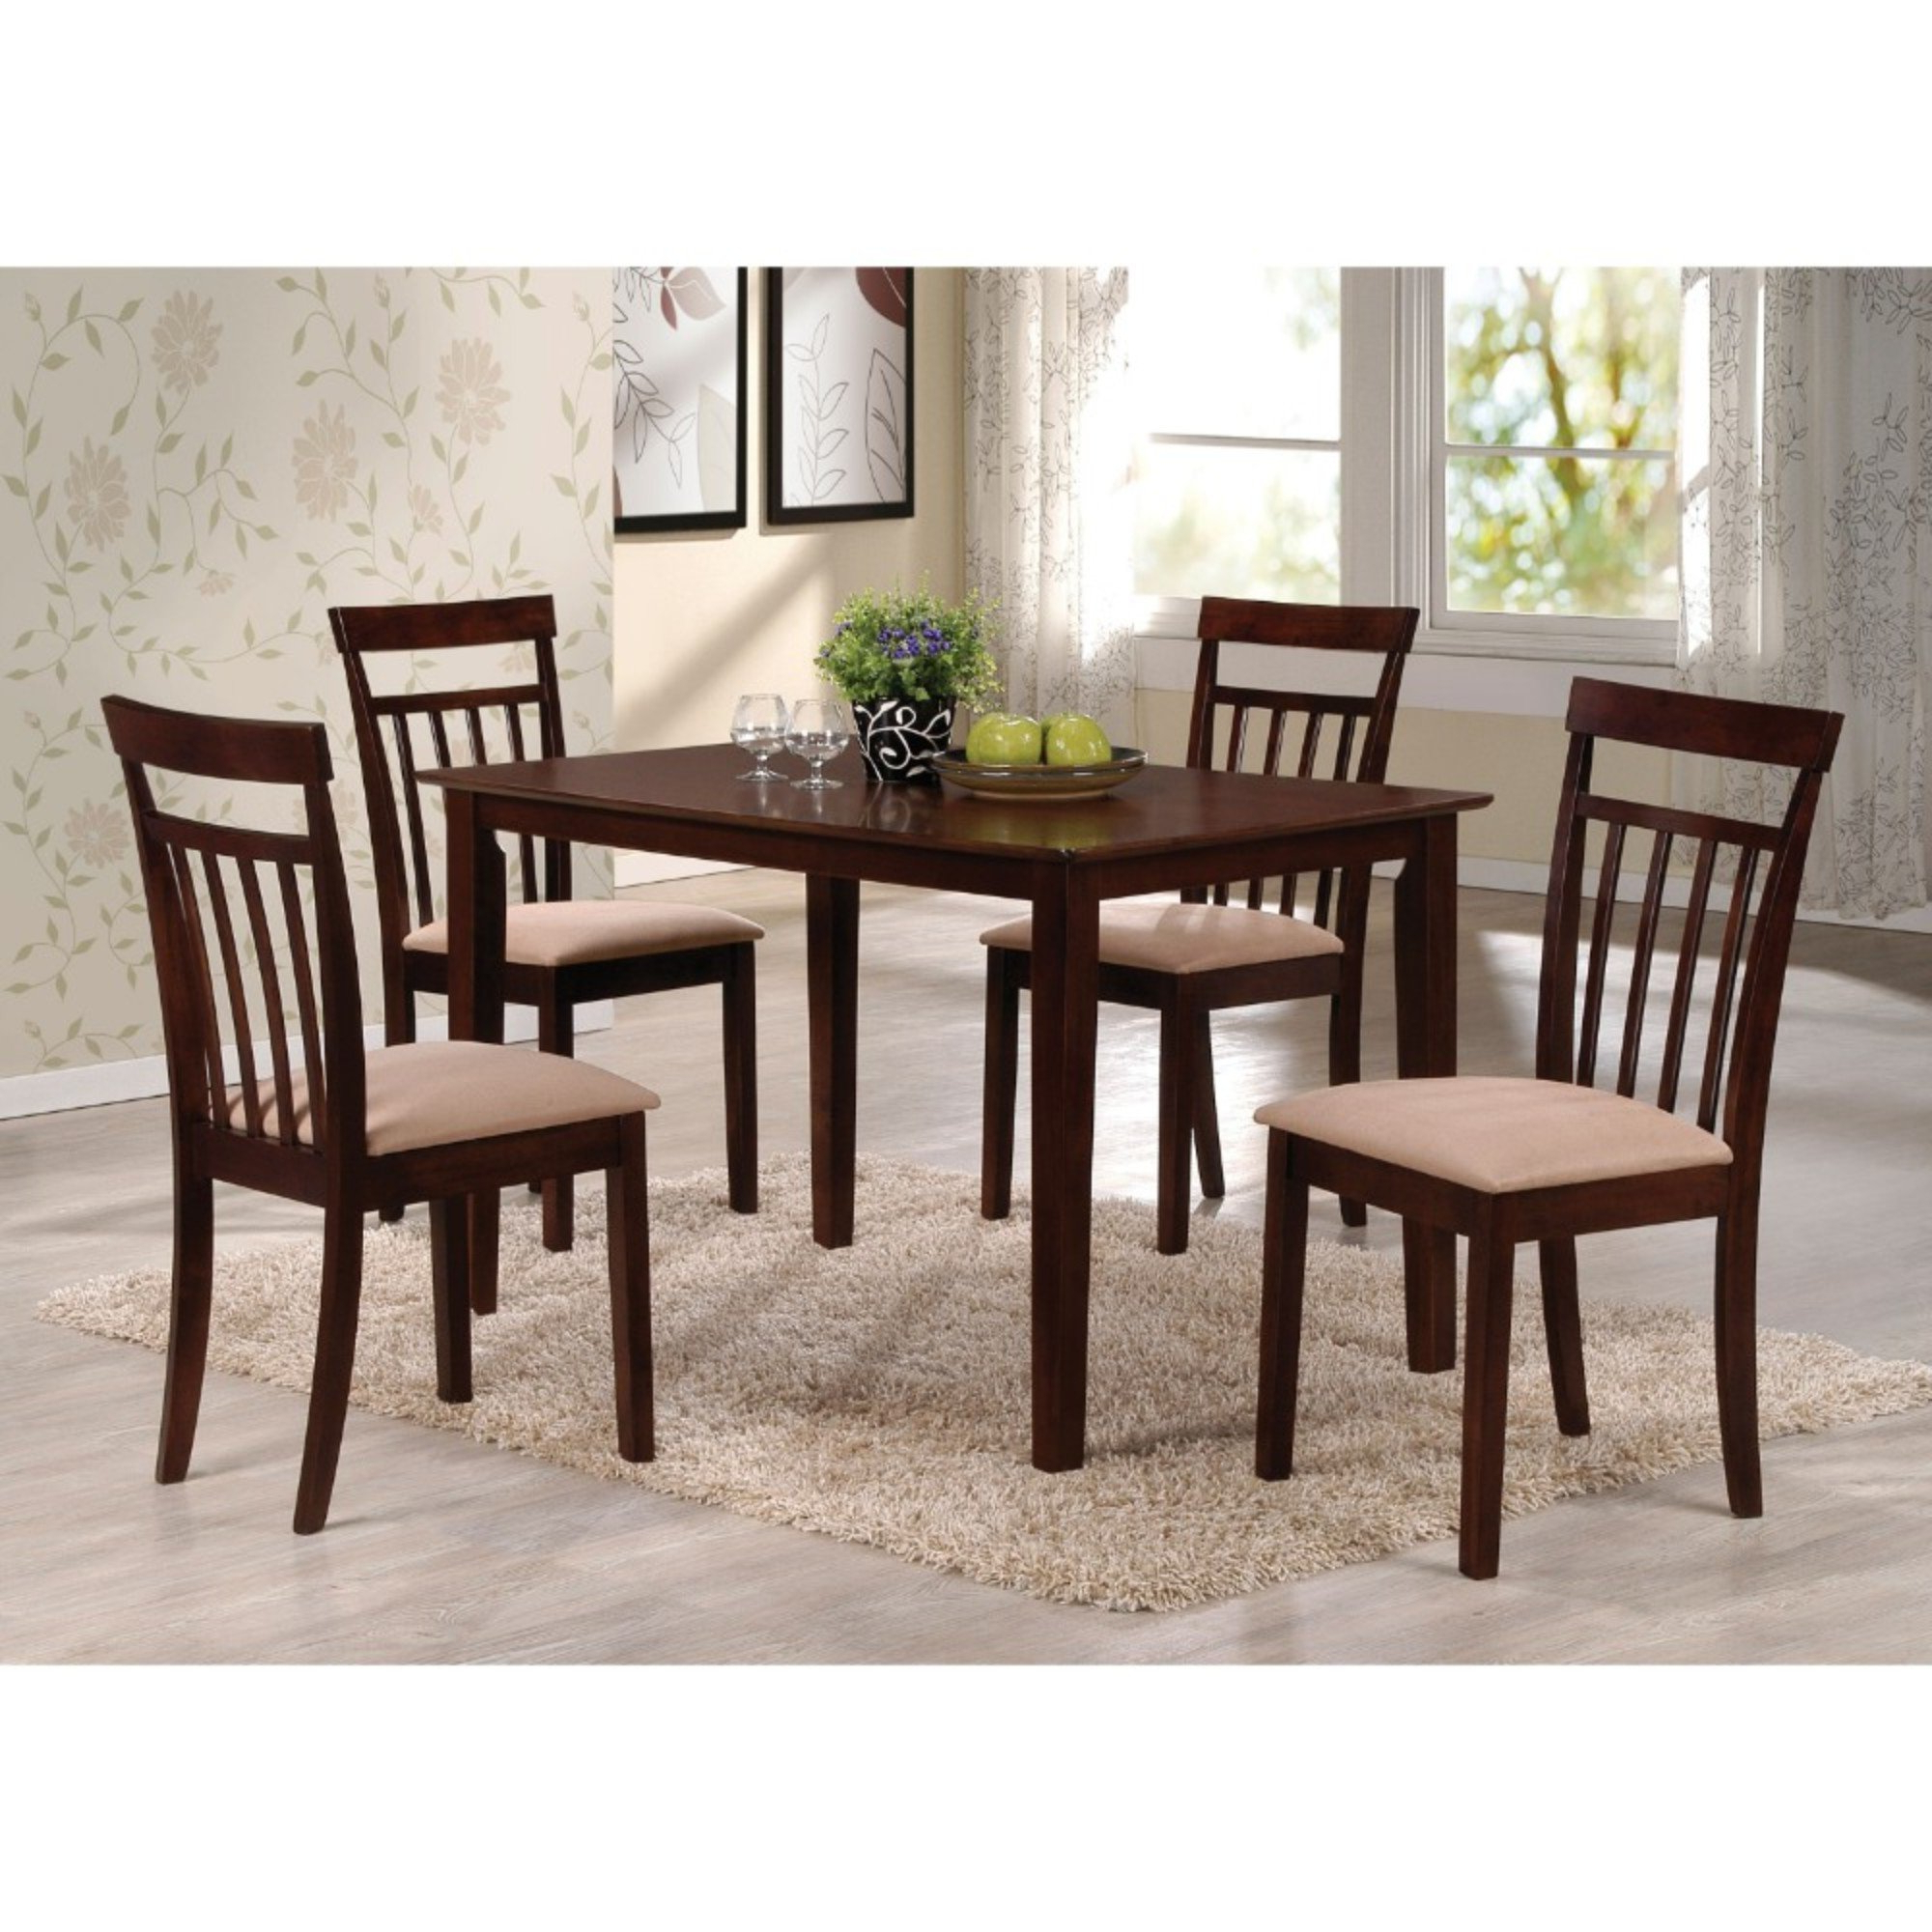 Favorite Bartel Wooden Slatted Back Chairs 5 Piece Dining Set Pertaining To Adan 5 Piece Solid Wood Dining Sets (Set Of 5) (View 15 of 20)